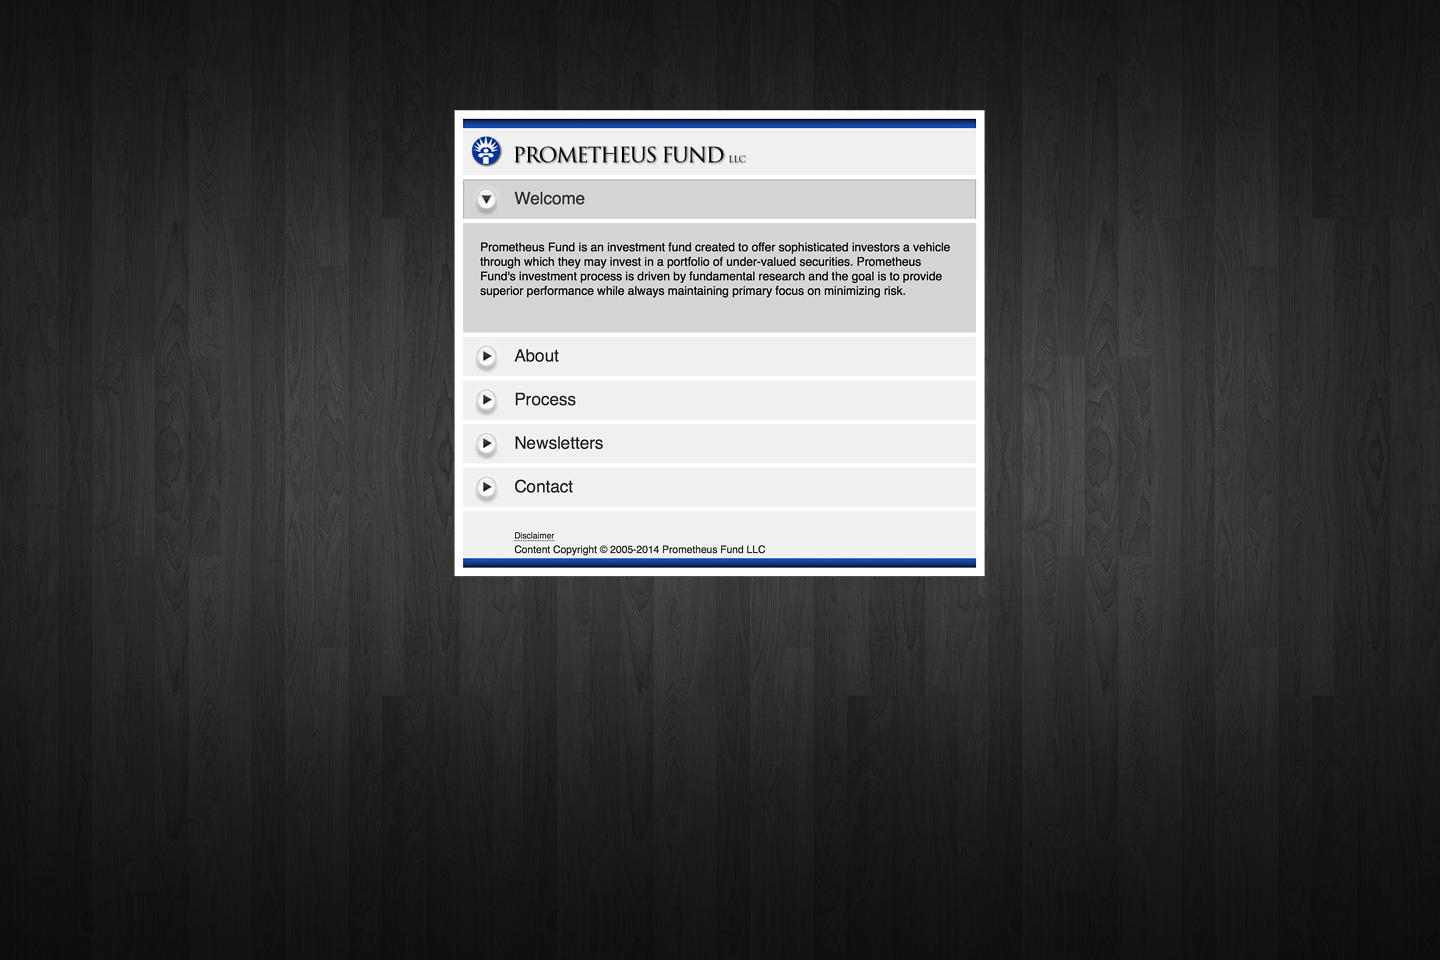 a screen capture of the prometheusfund.com website featuring the welcome page